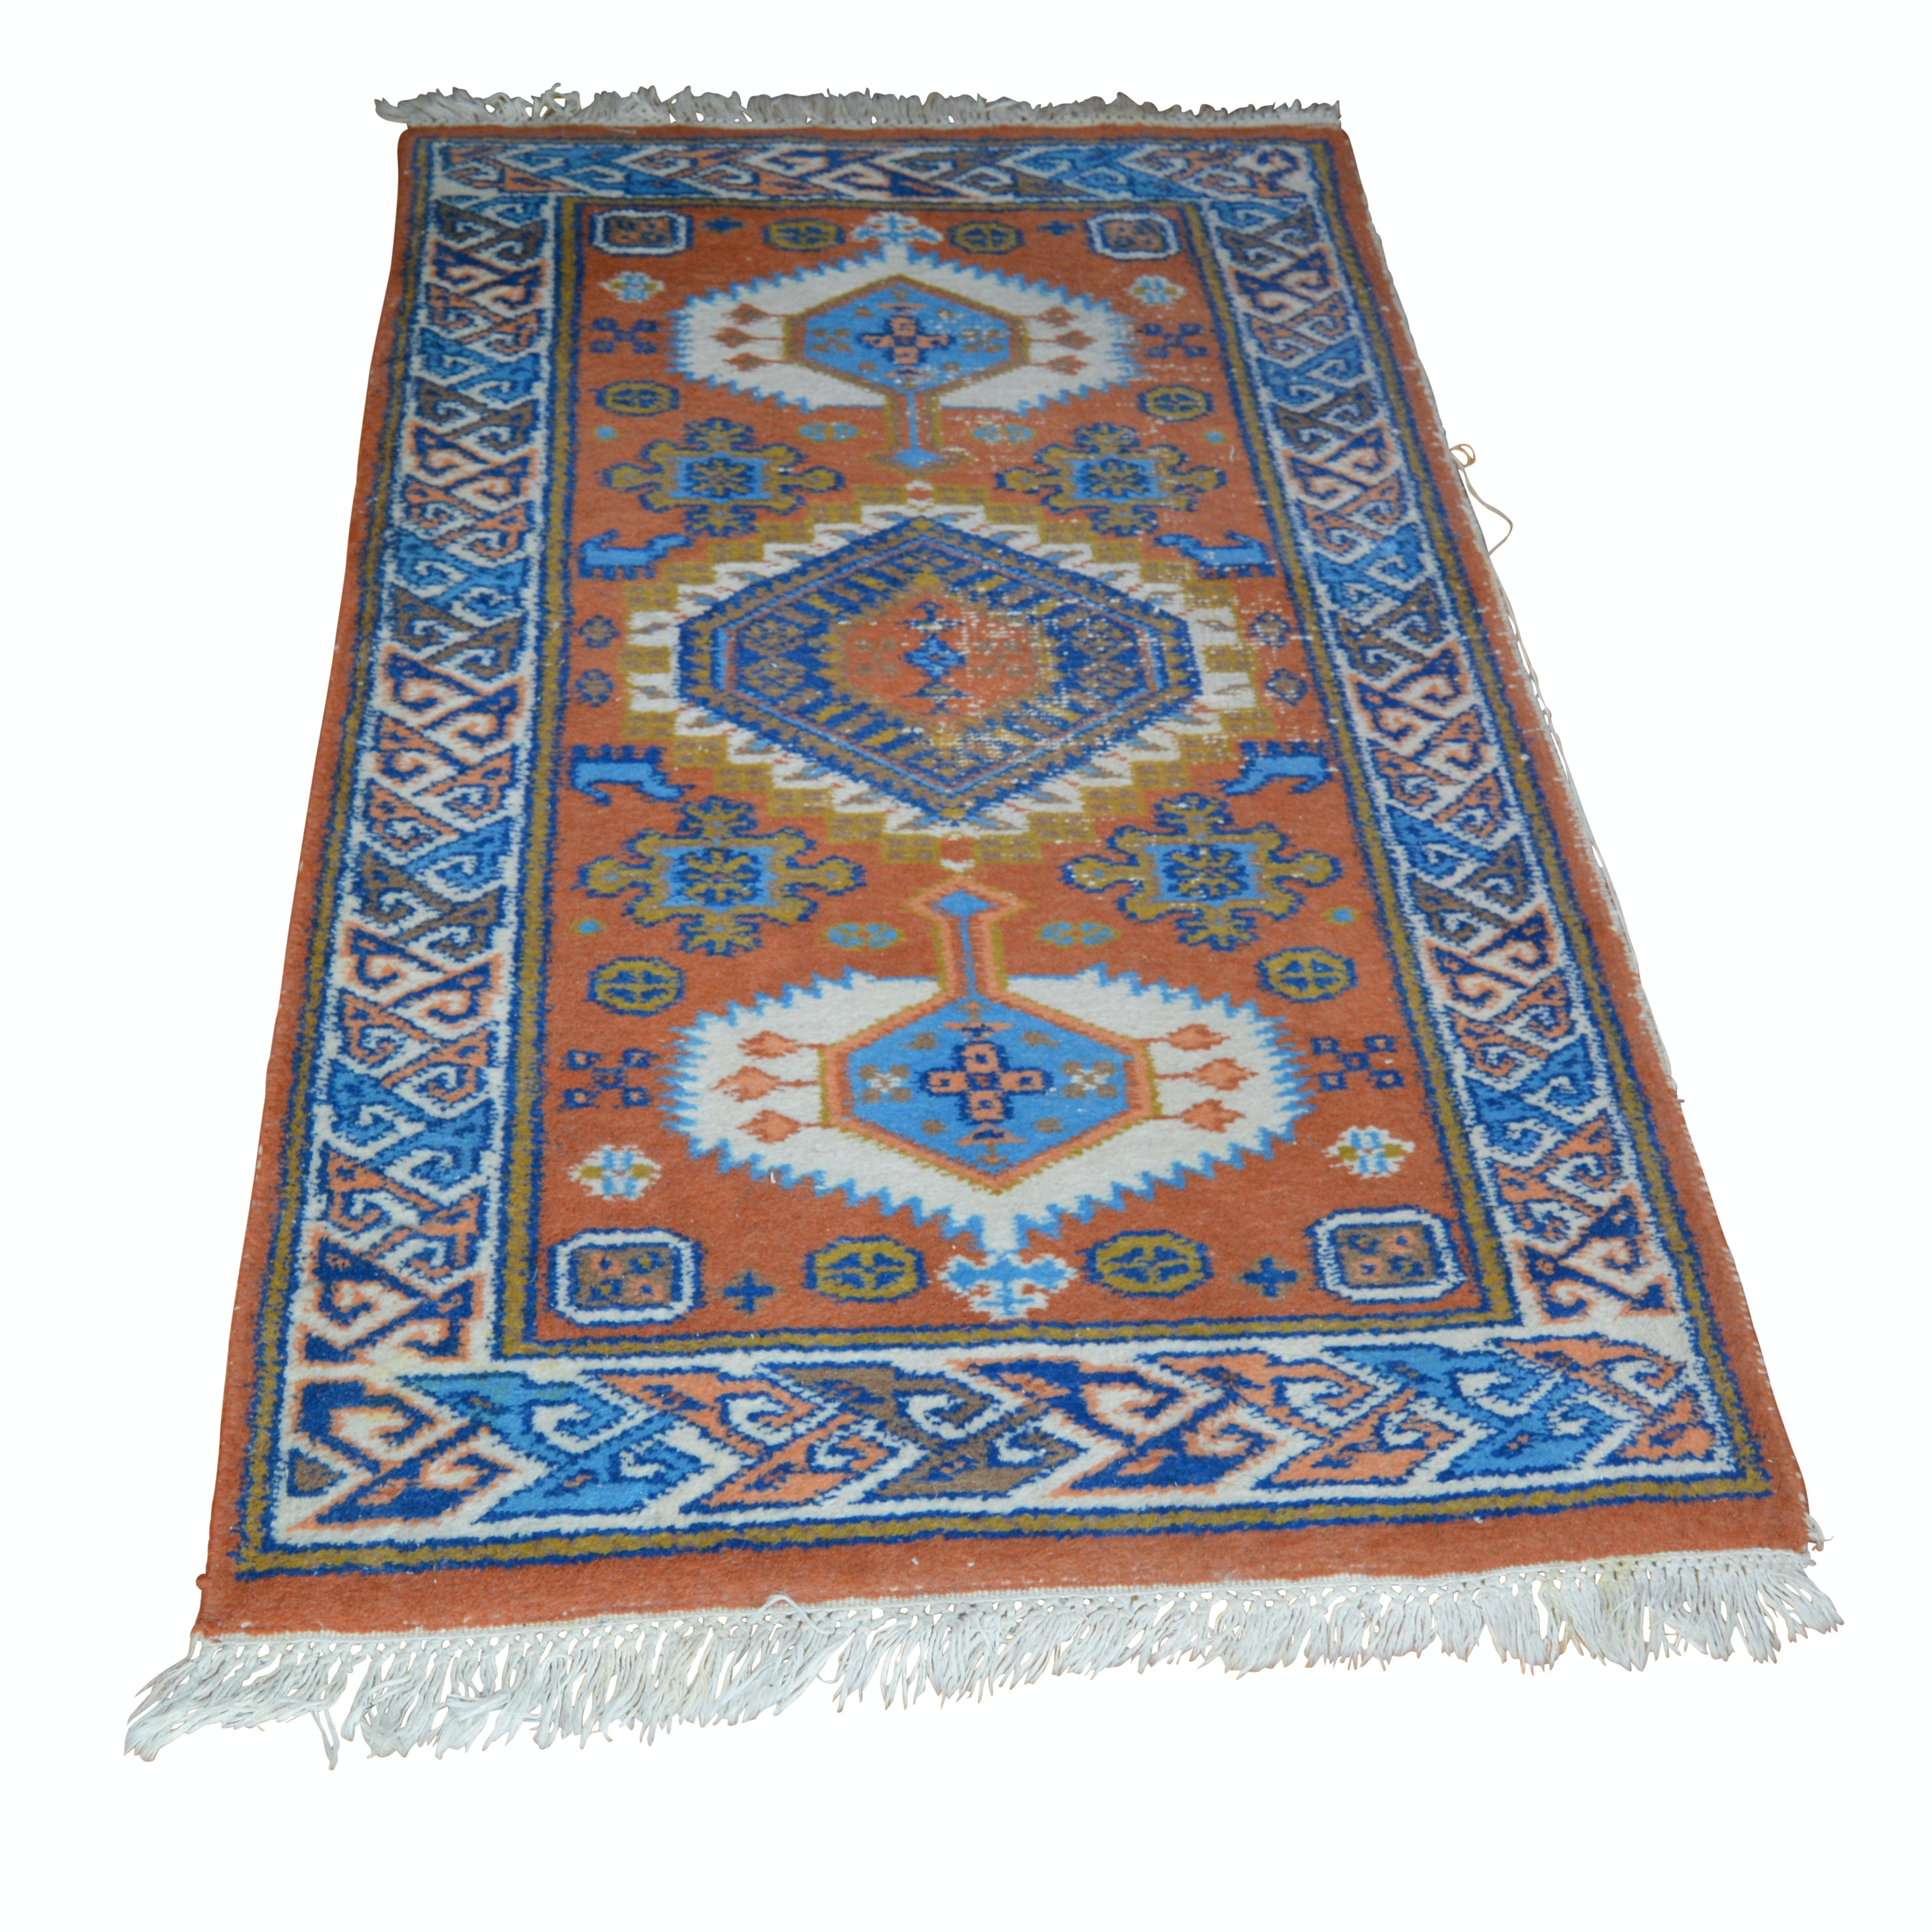 Hand-Knotted Indo-Caucasus Kazak Style Wool Area Rug